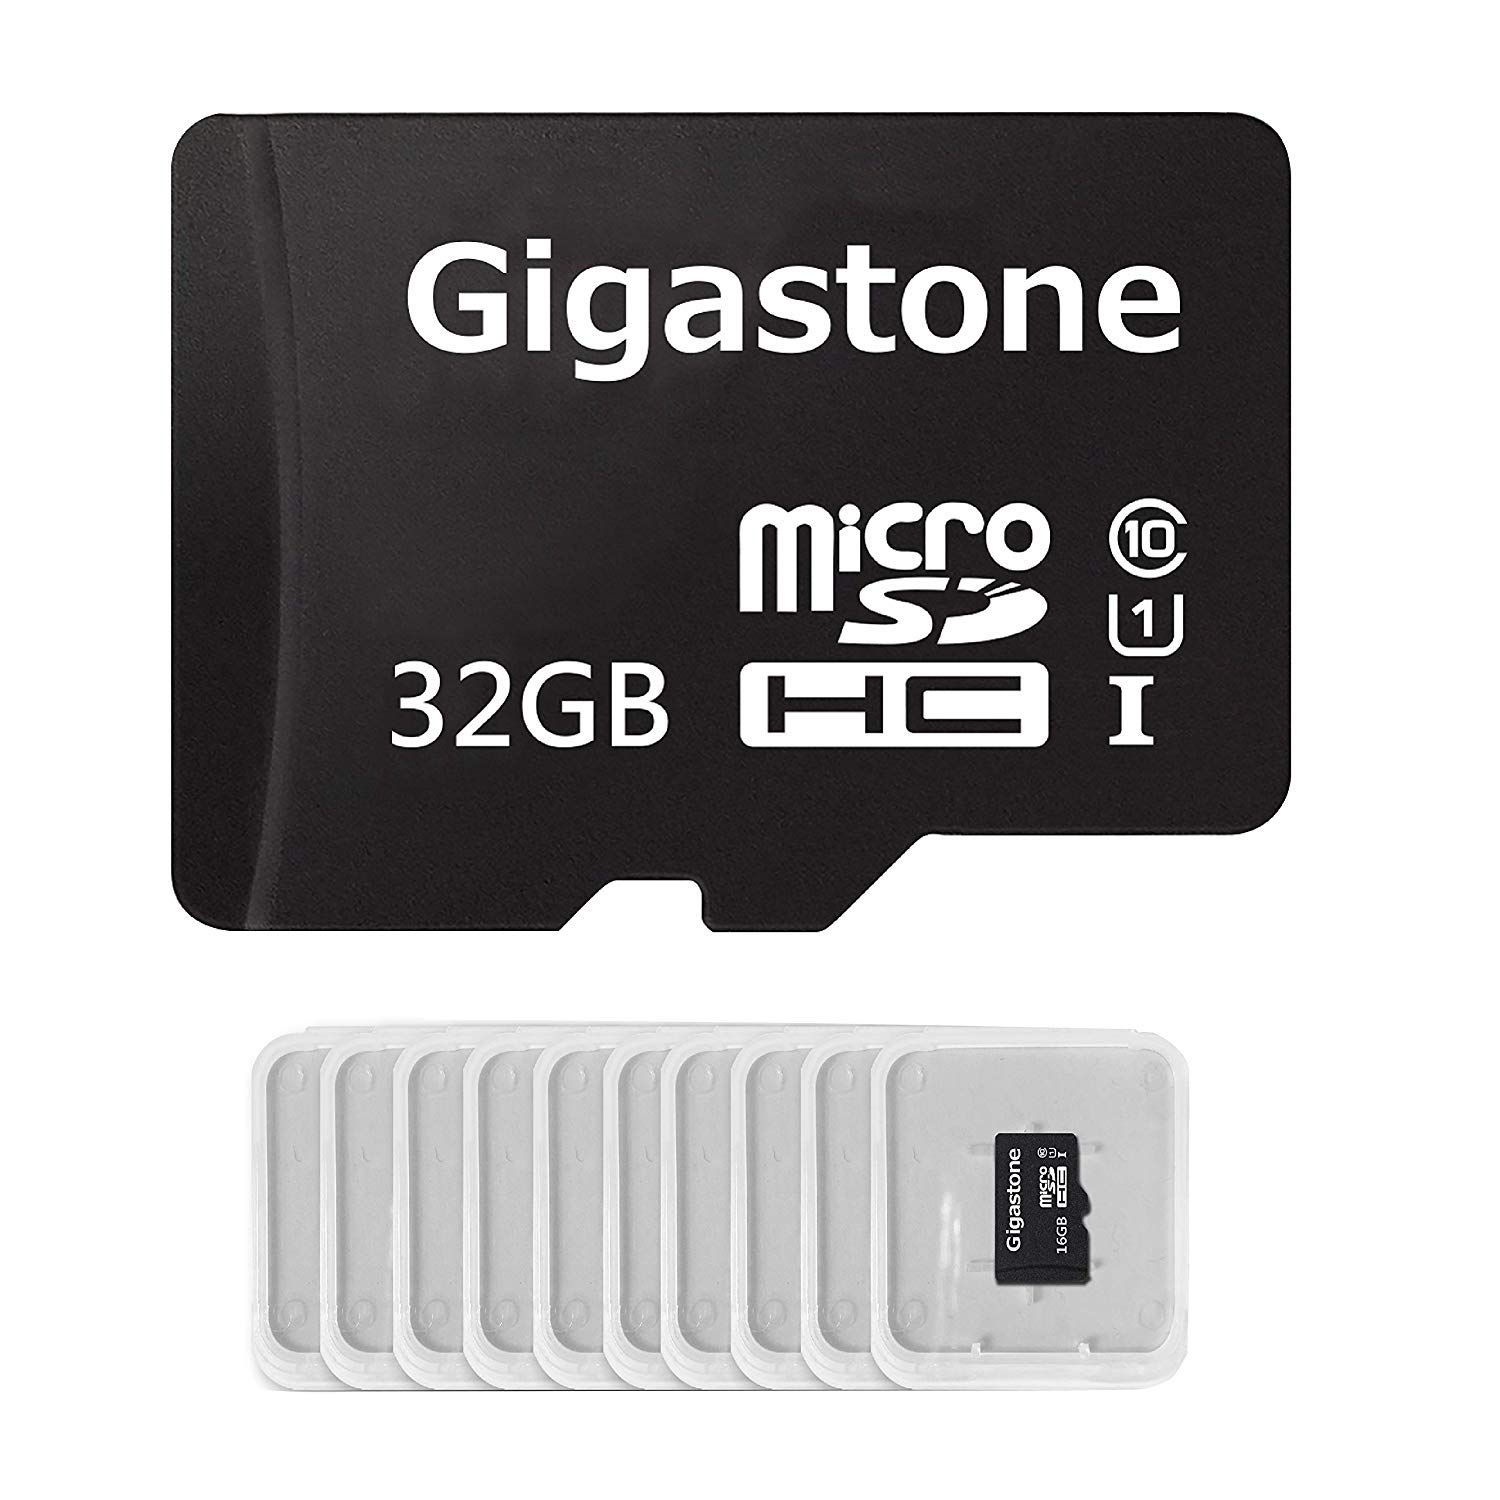 Gigastone Micro SD Card 32GB 10-Pack Micro SDHC U1 C10 with Mini Case High Speed Memory Card Class10 Uhs Full HD Video Nintendo Gopro Camera Samsung Canon Nikon DJI Drone- Black by Gigastone